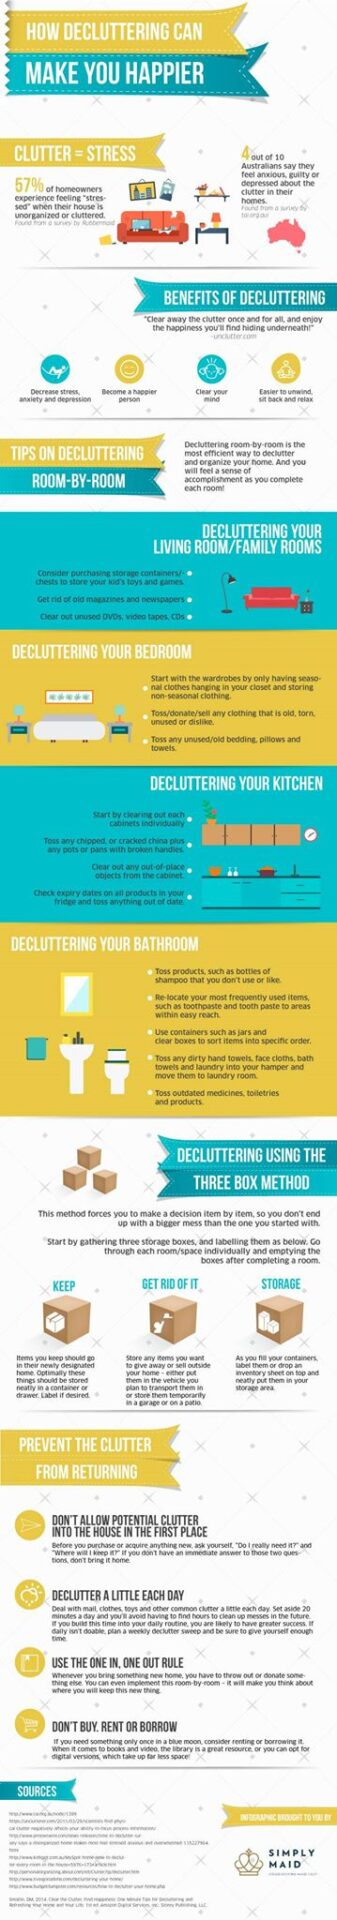 Decluttering Your Home Can Make You Happy